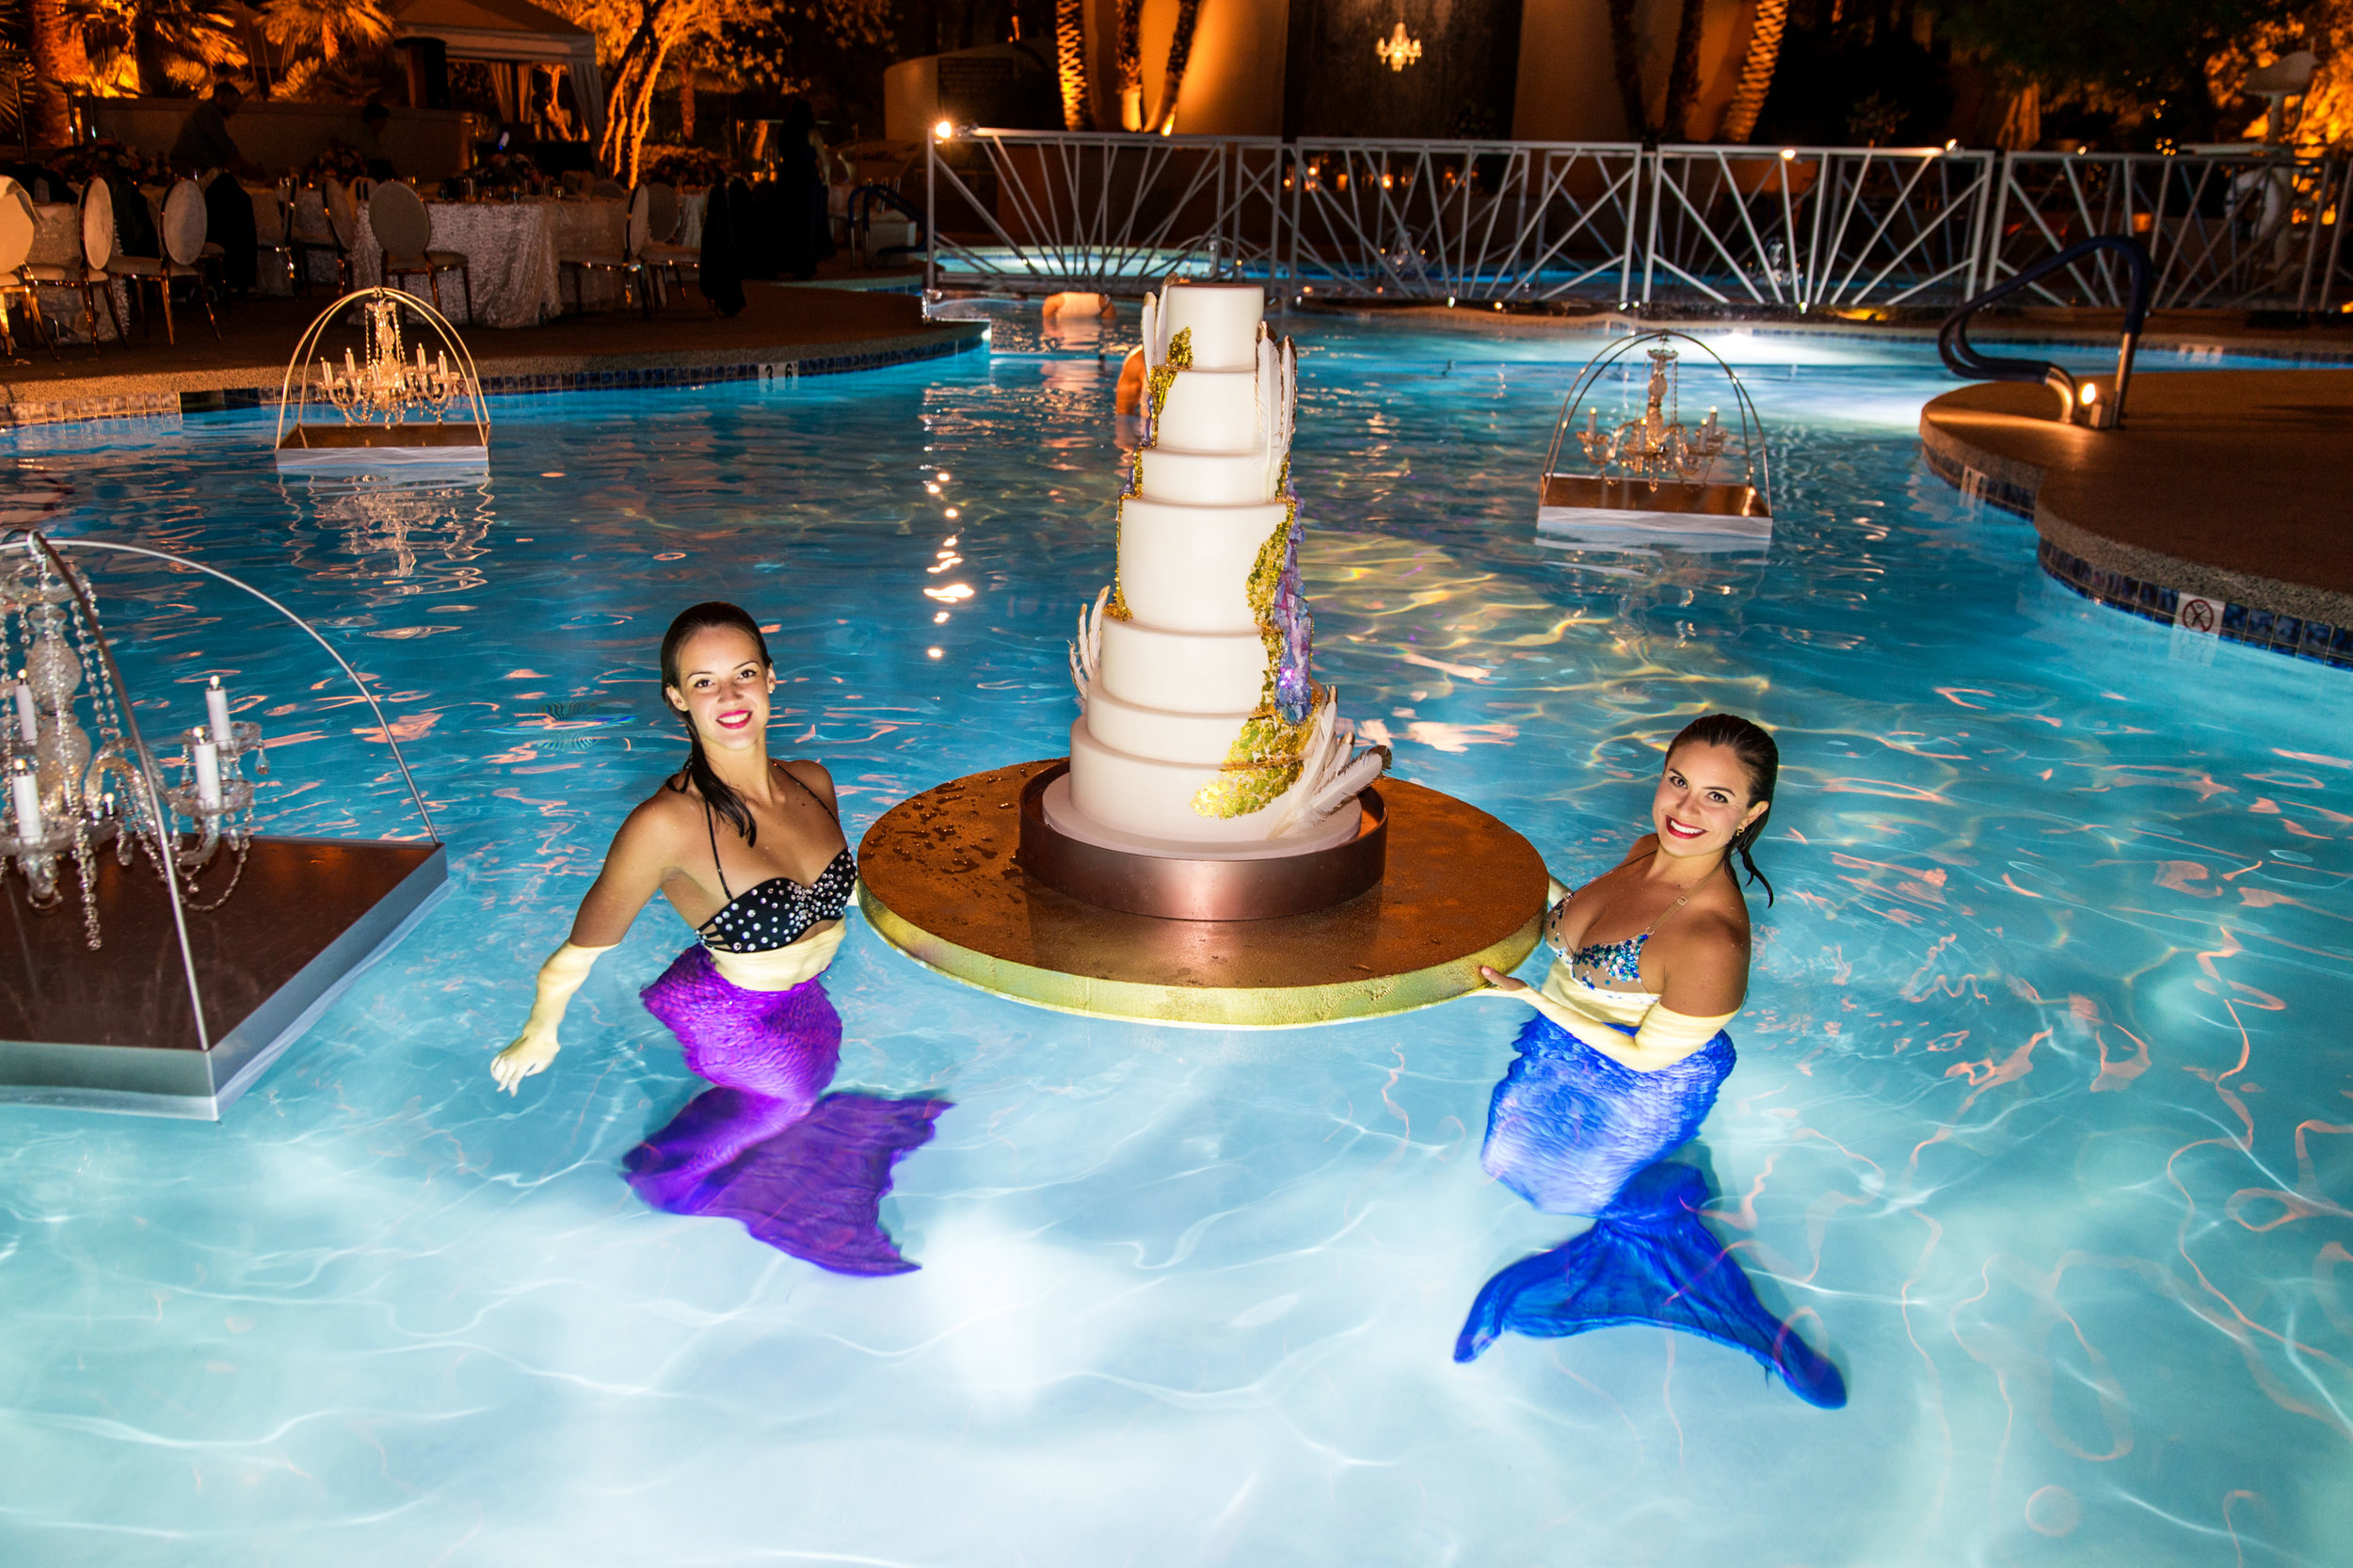 Mermaids with geode floating wedding cake.Wedding Planning by  Andrea Eppolito Events  · Photography by  Shandro Photo   · Wedding Venue  Four Seasons Las Vegas  · Floral and Decor by  Destination by Design  · Cake by  Four Seasons Las Vegas  · Chandeliers and Lighting by  LED Unplugged  · Dress by  Berta  and Menu by Alligator Soup